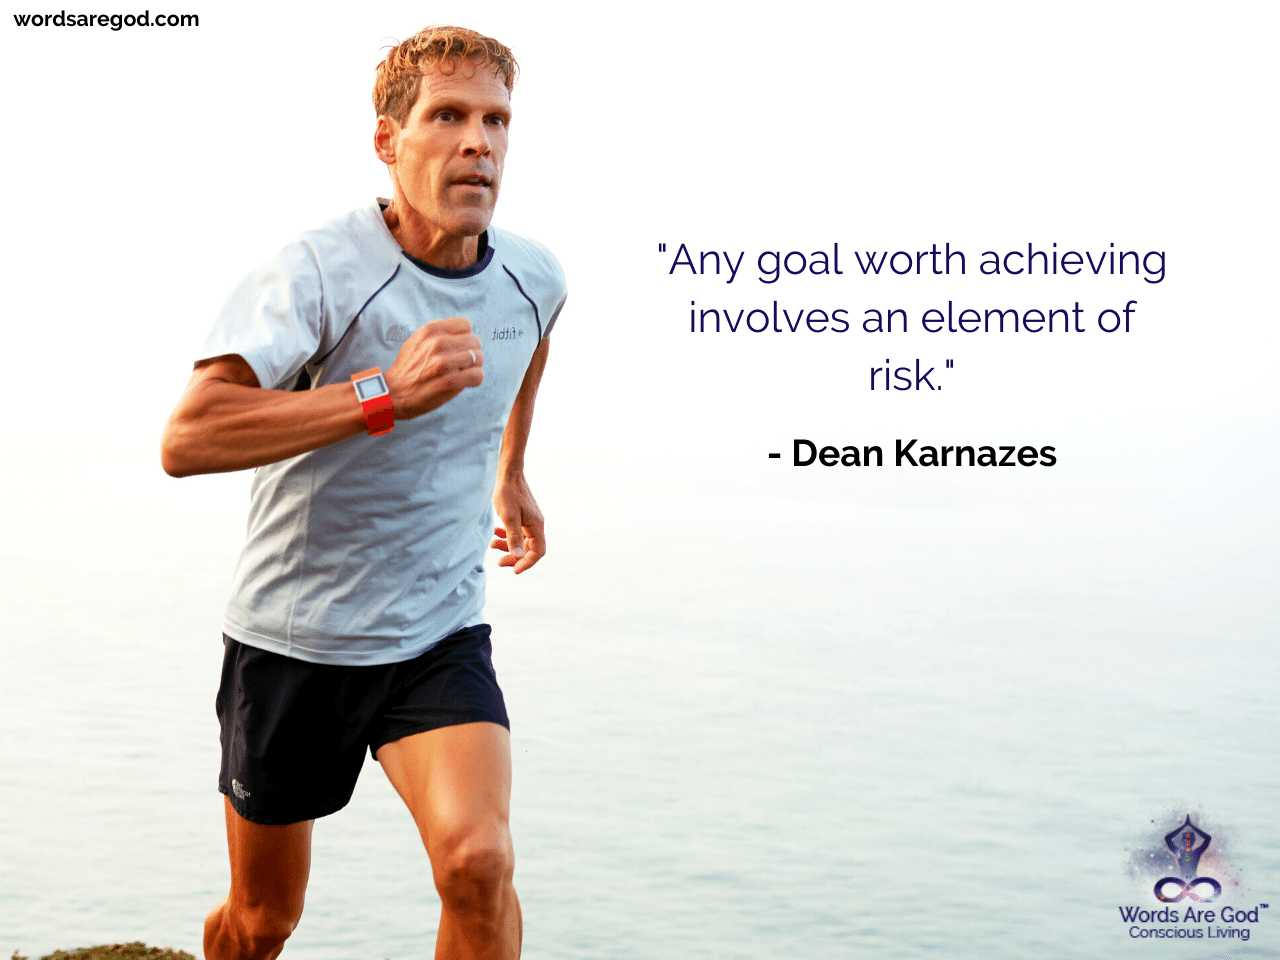 Dean Karnazes Inspirational Quote